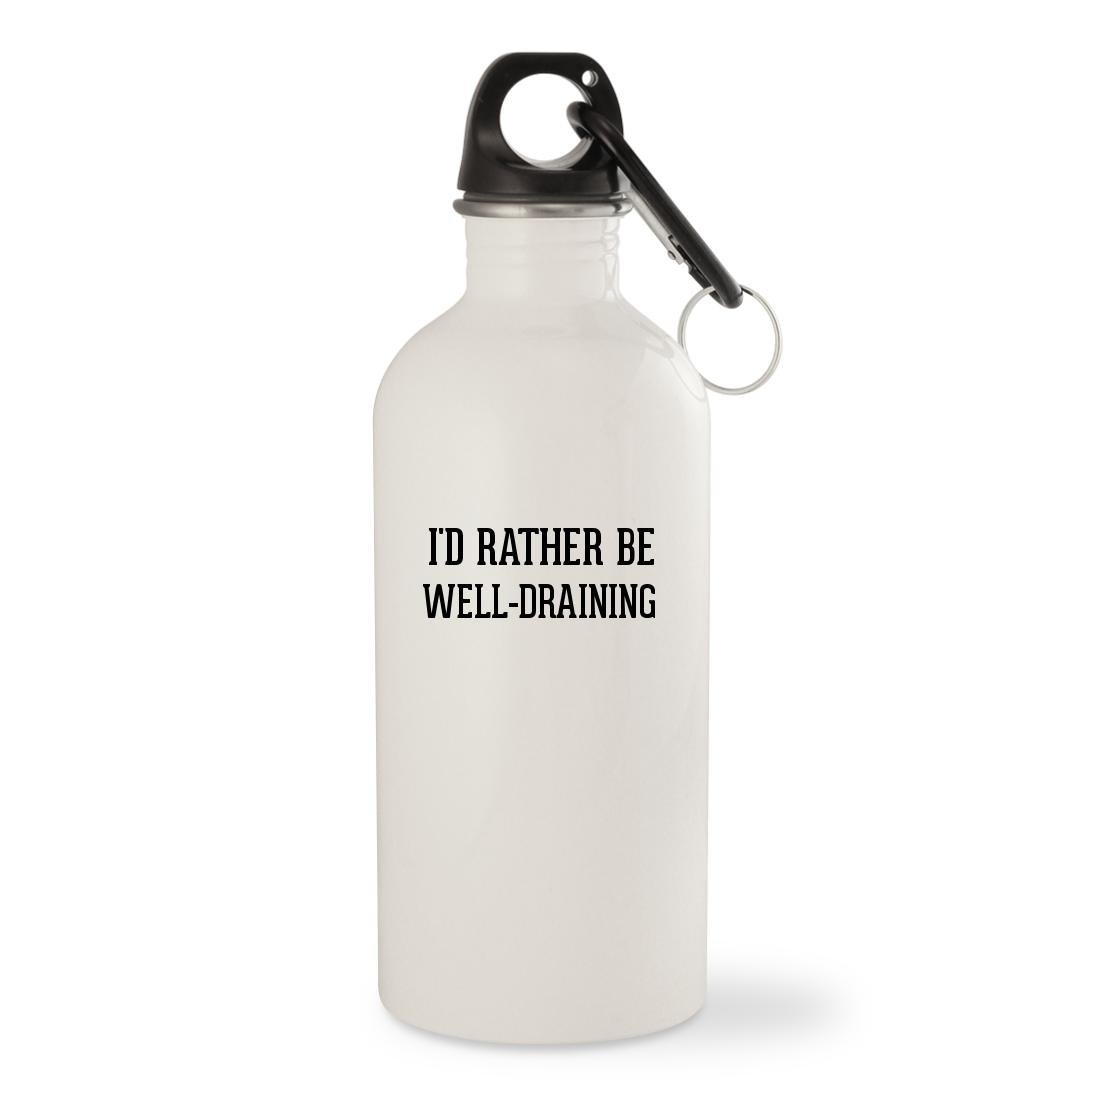 I'd Rather Be WELL-DRAINING - White 20oz Stainless Steel Water Bottle with Carabiner